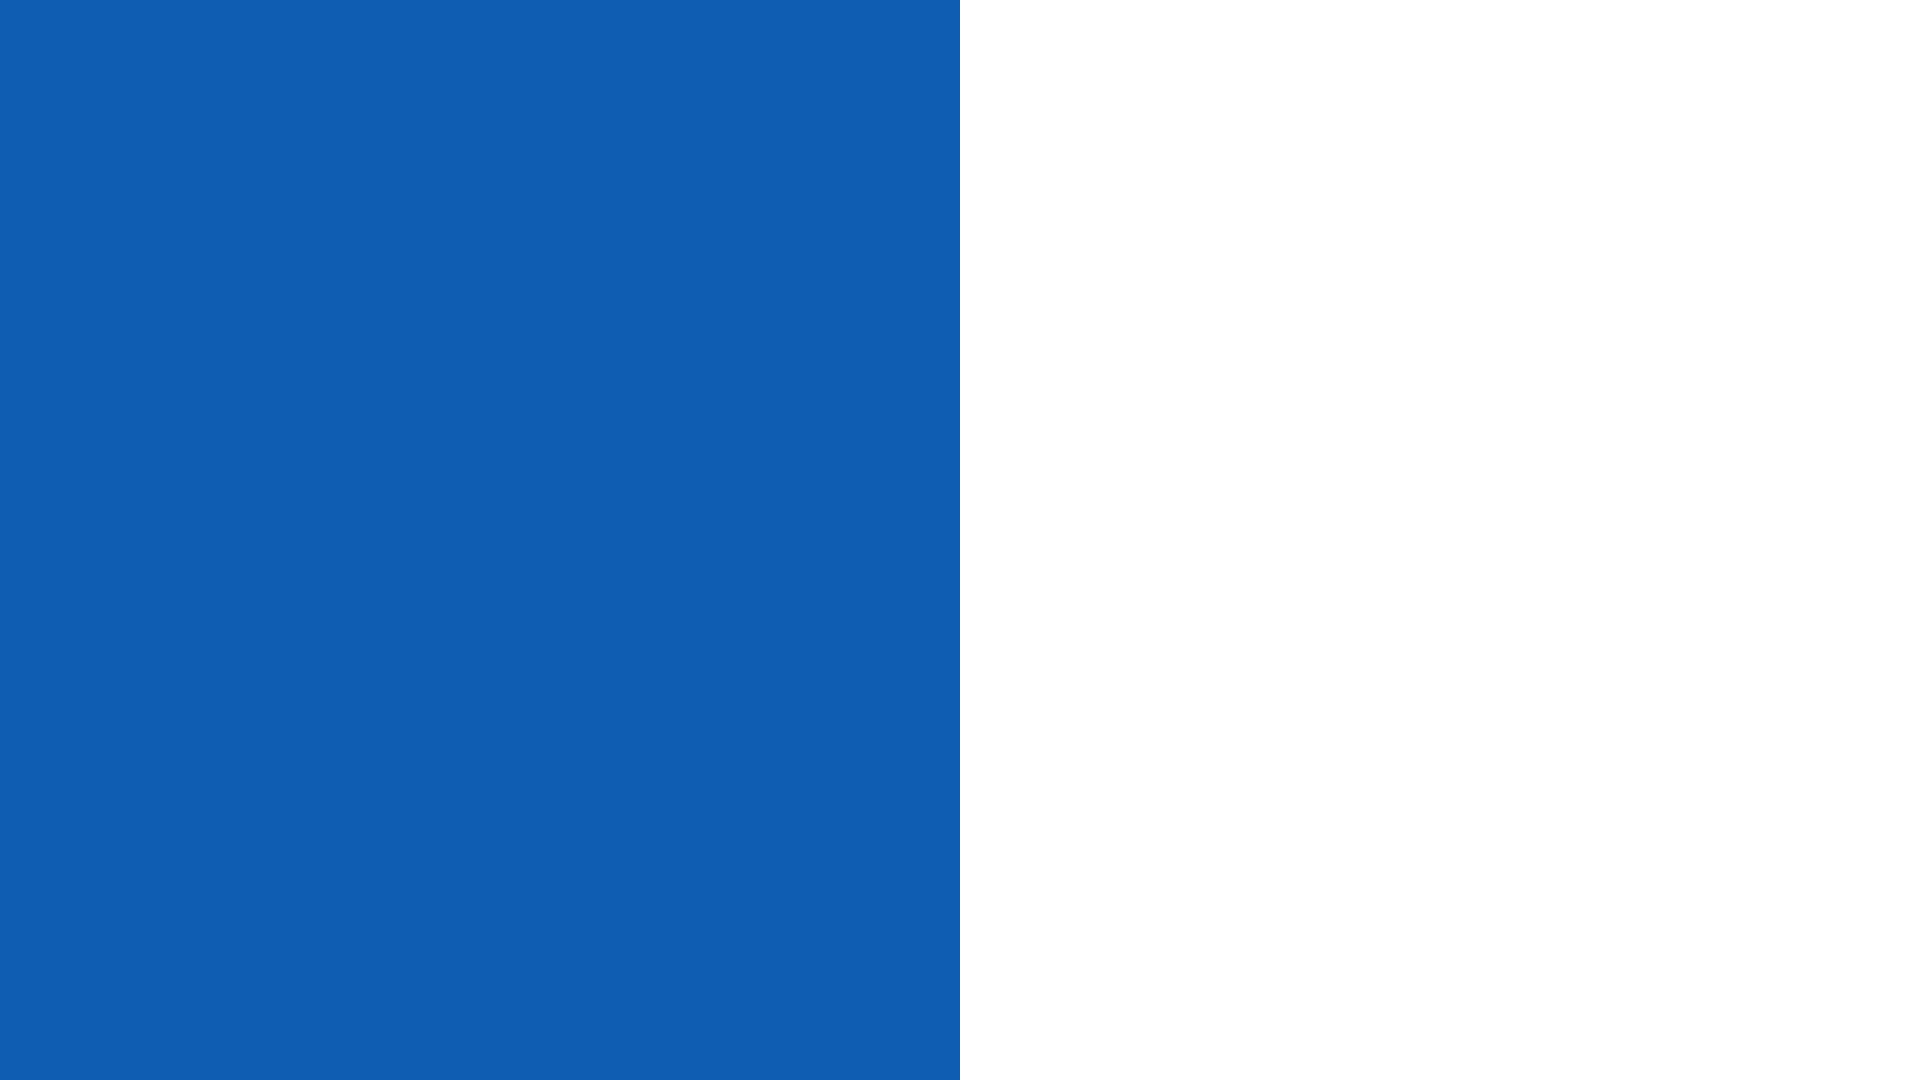 Greece Flag Colors